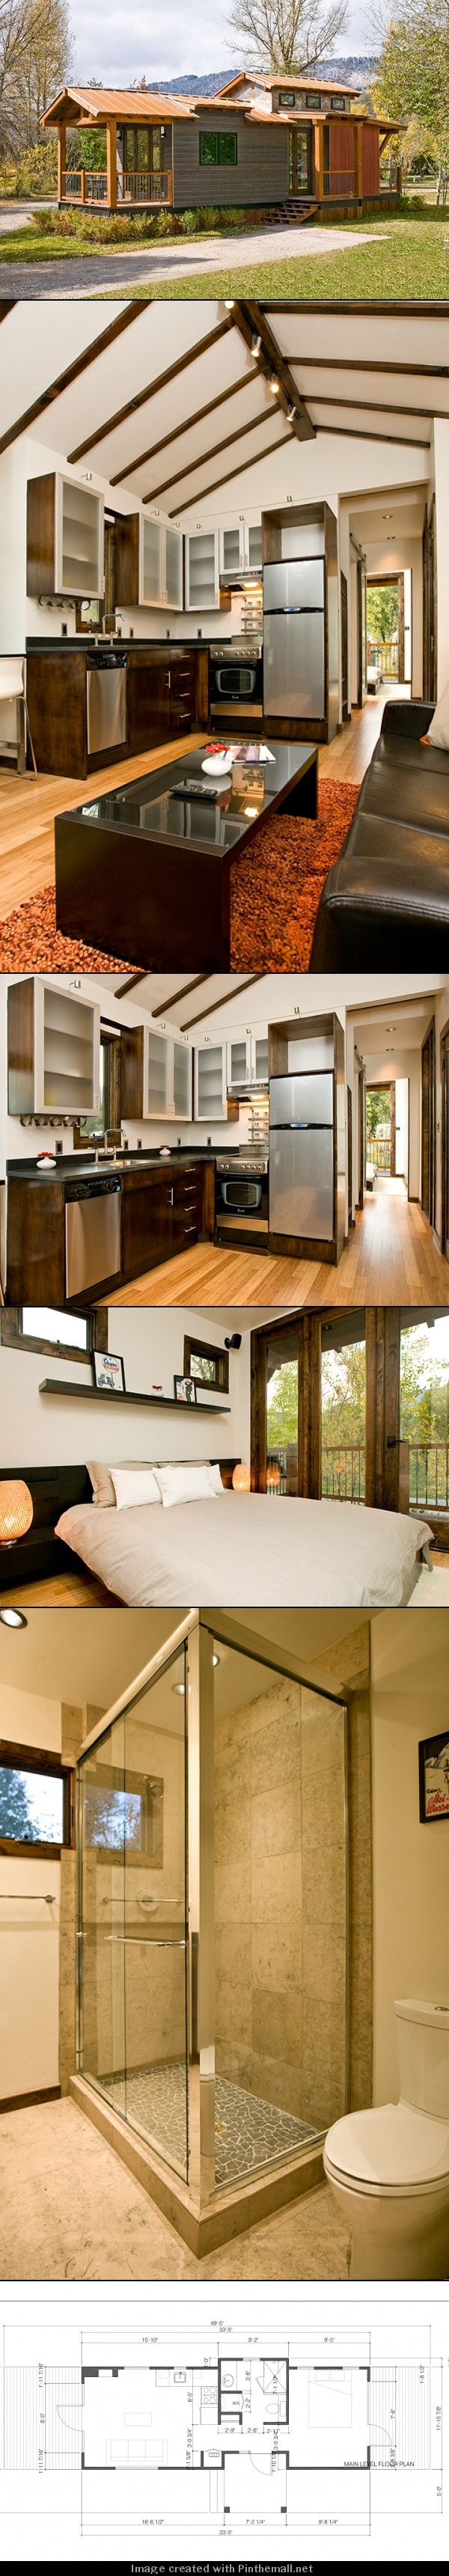 kleine h user tiny house pinterest kleines h uschen architektur und minihaus. Black Bedroom Furniture Sets. Home Design Ideas